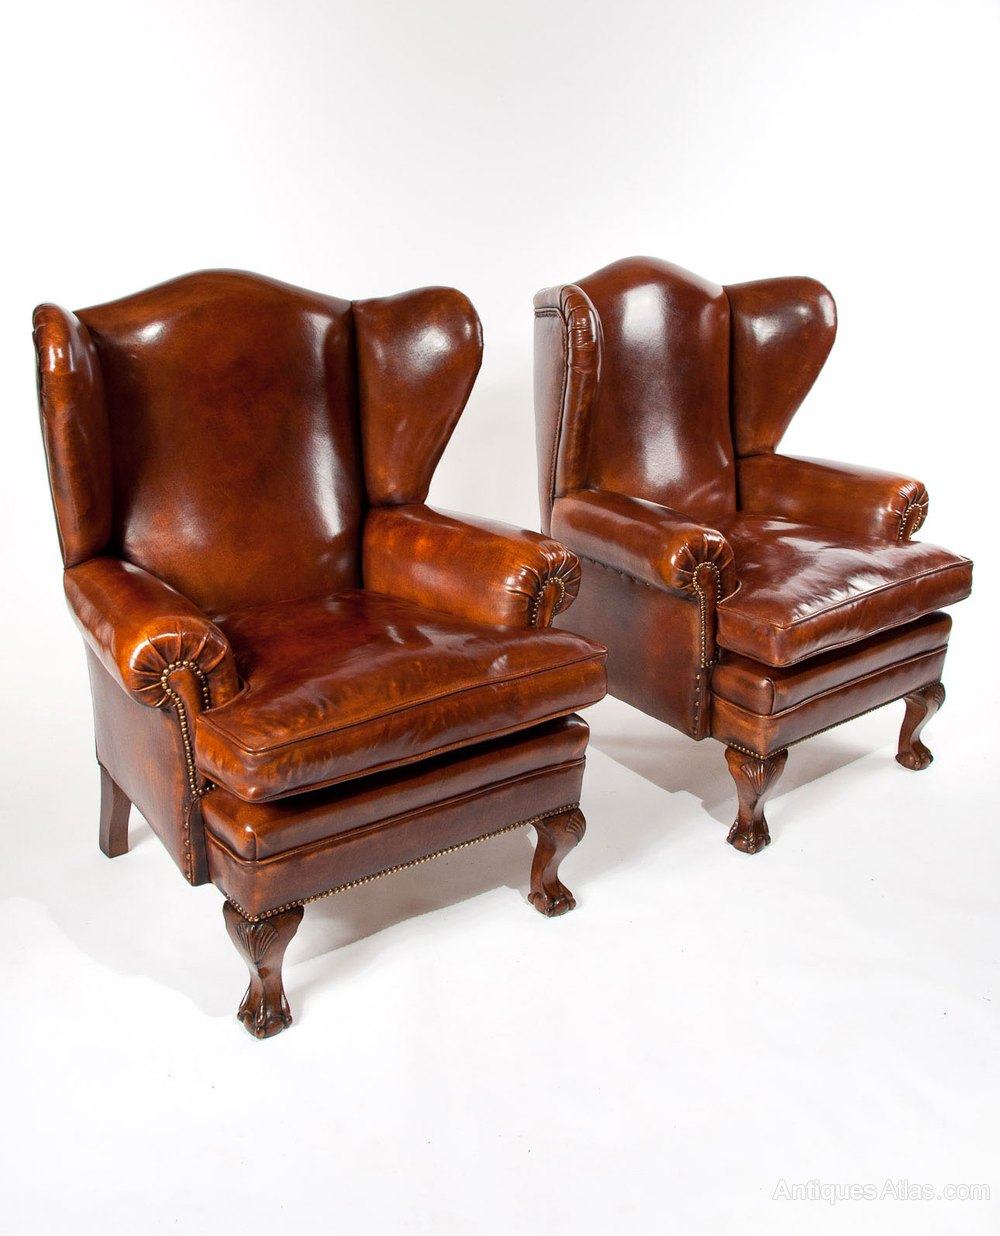 Pair of walnut leather wing chairs 19thc antiques atlas for Antique leather chairs